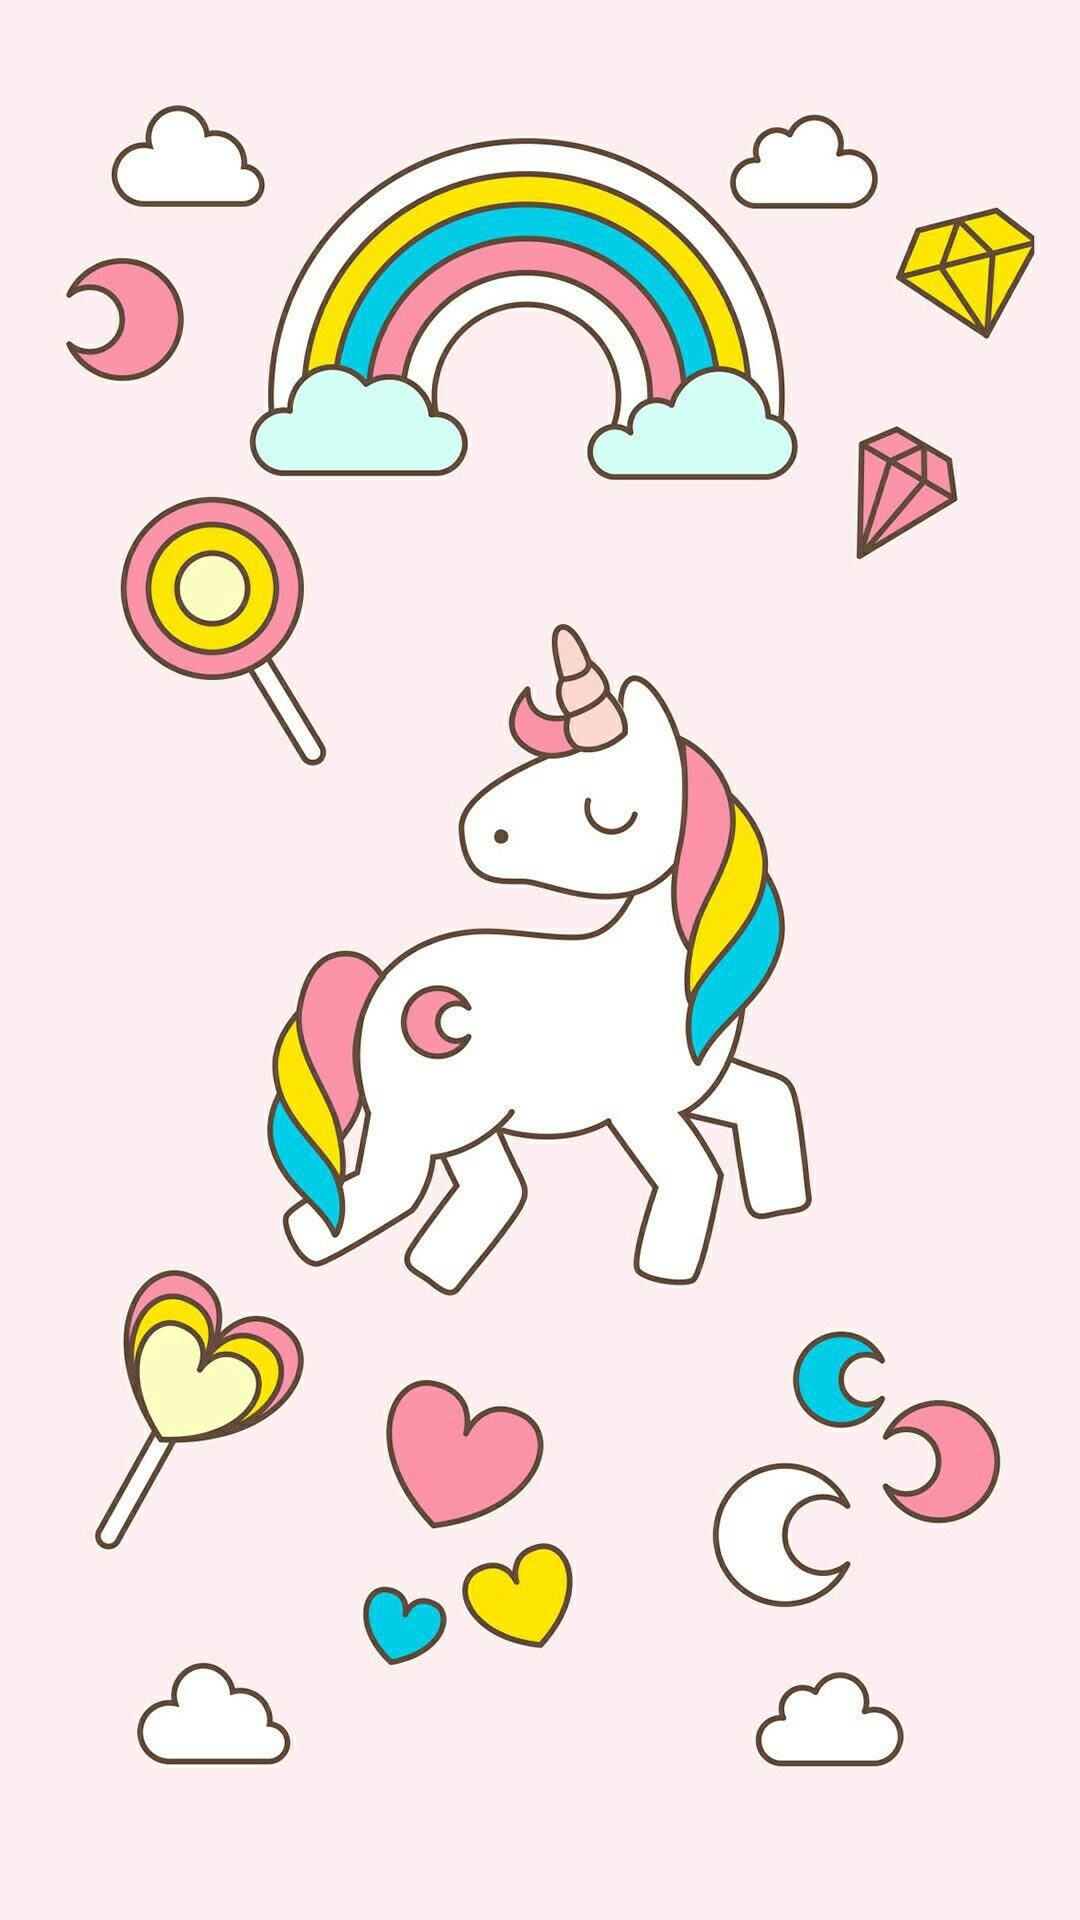 Unicorn Pics Desktop Wallpapers Wallpaper Backgrounds Tattoos Kawaii Cellphone Rainbows Cartoon Drawings Por Favor